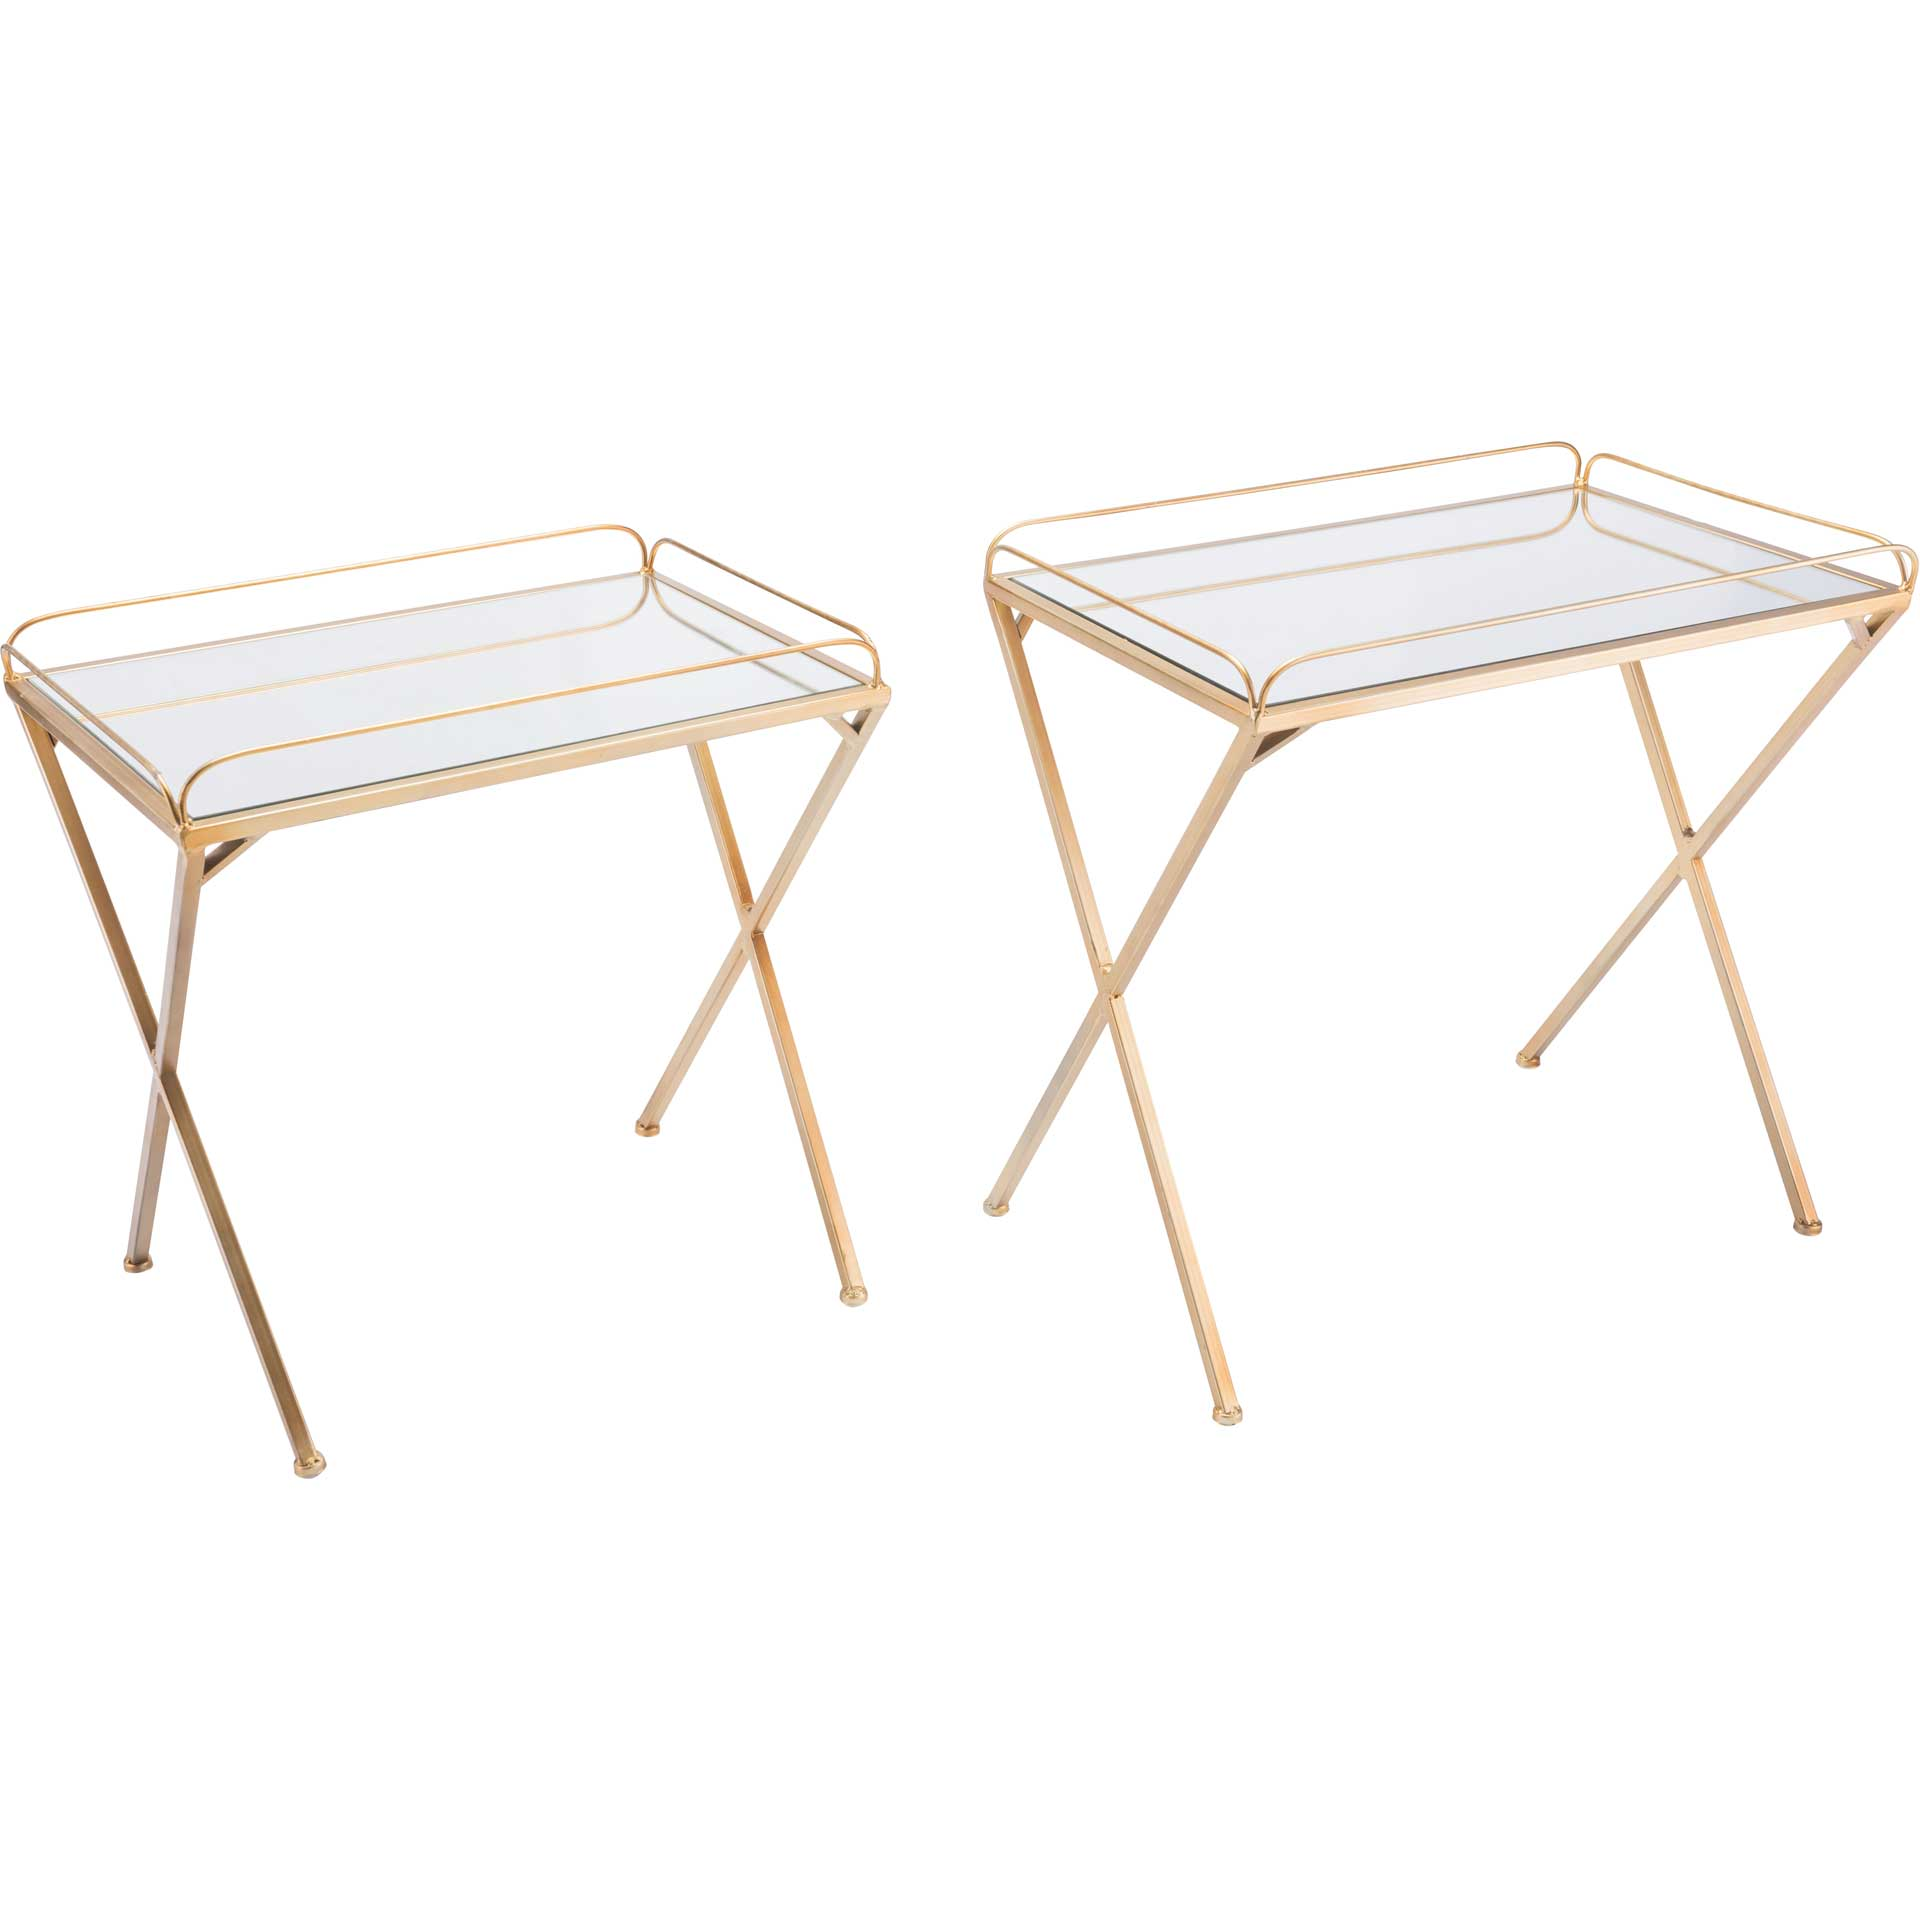 Opposite Table Gold (Set of 2)